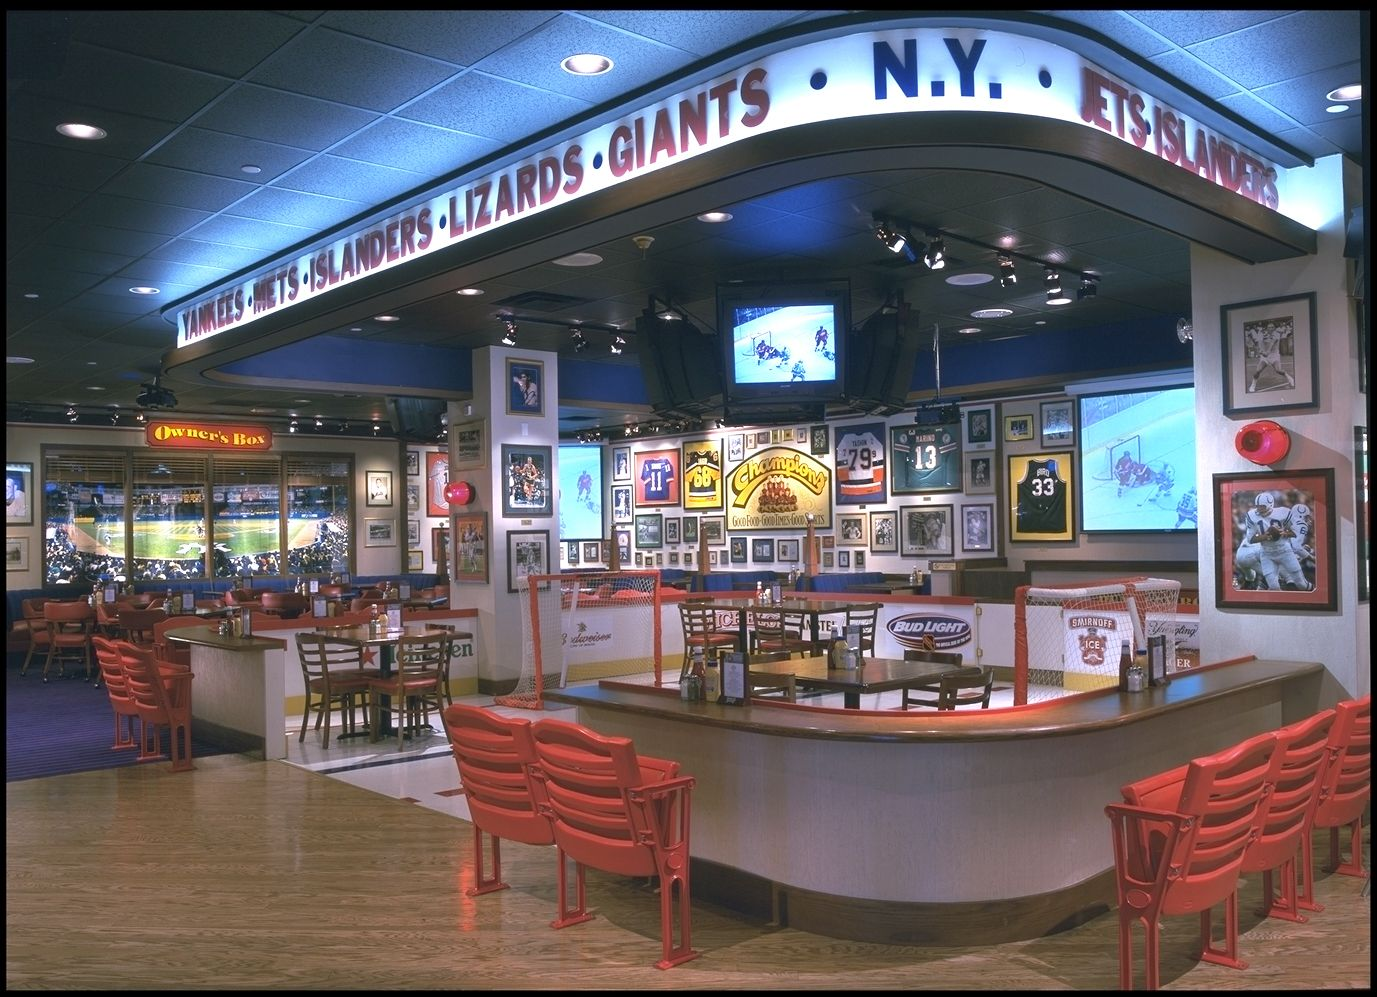 very typical sports bar, which elements to take from